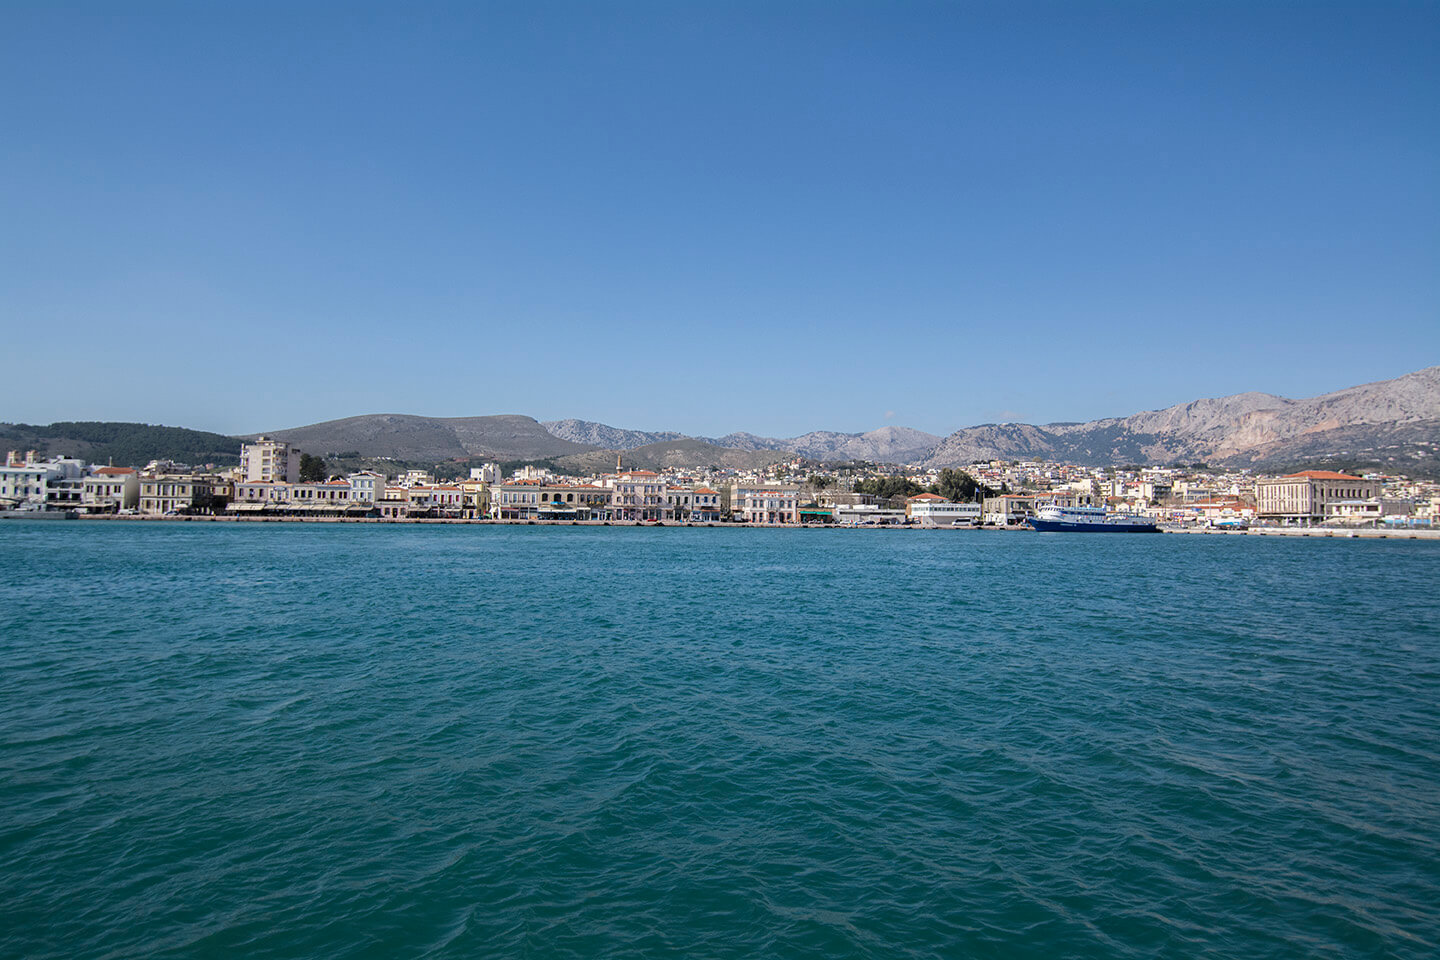 Chios city view from the harbor